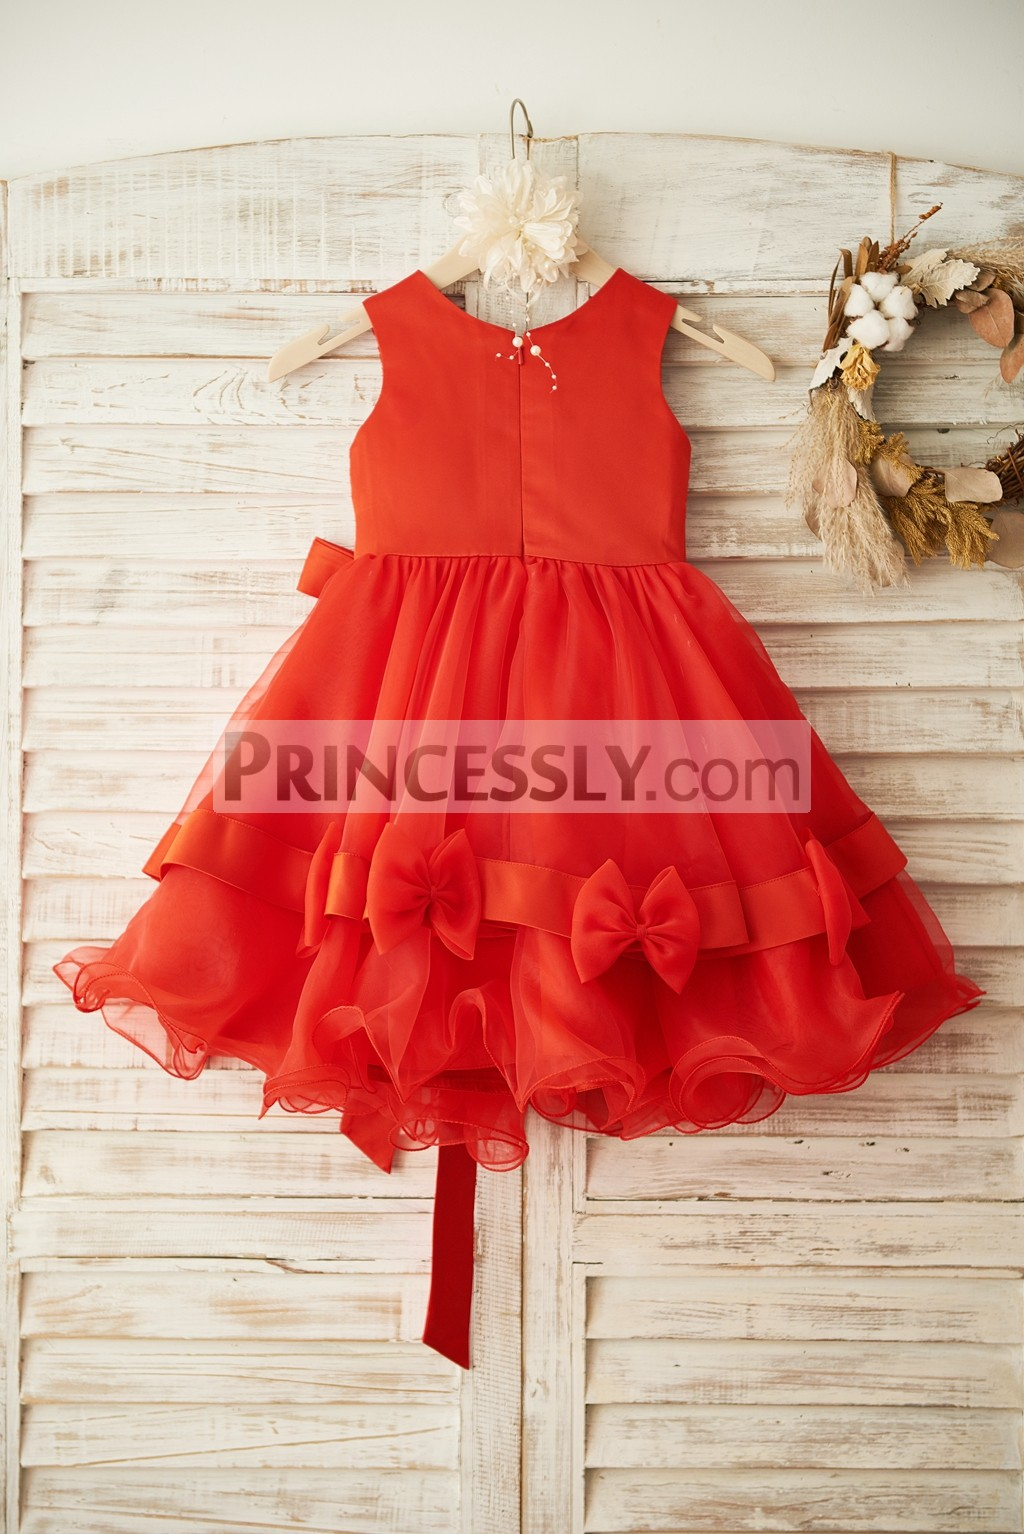 Panel Back of Bodice Ruffles Organza Skirt Wedding Baby Little Girl Dress